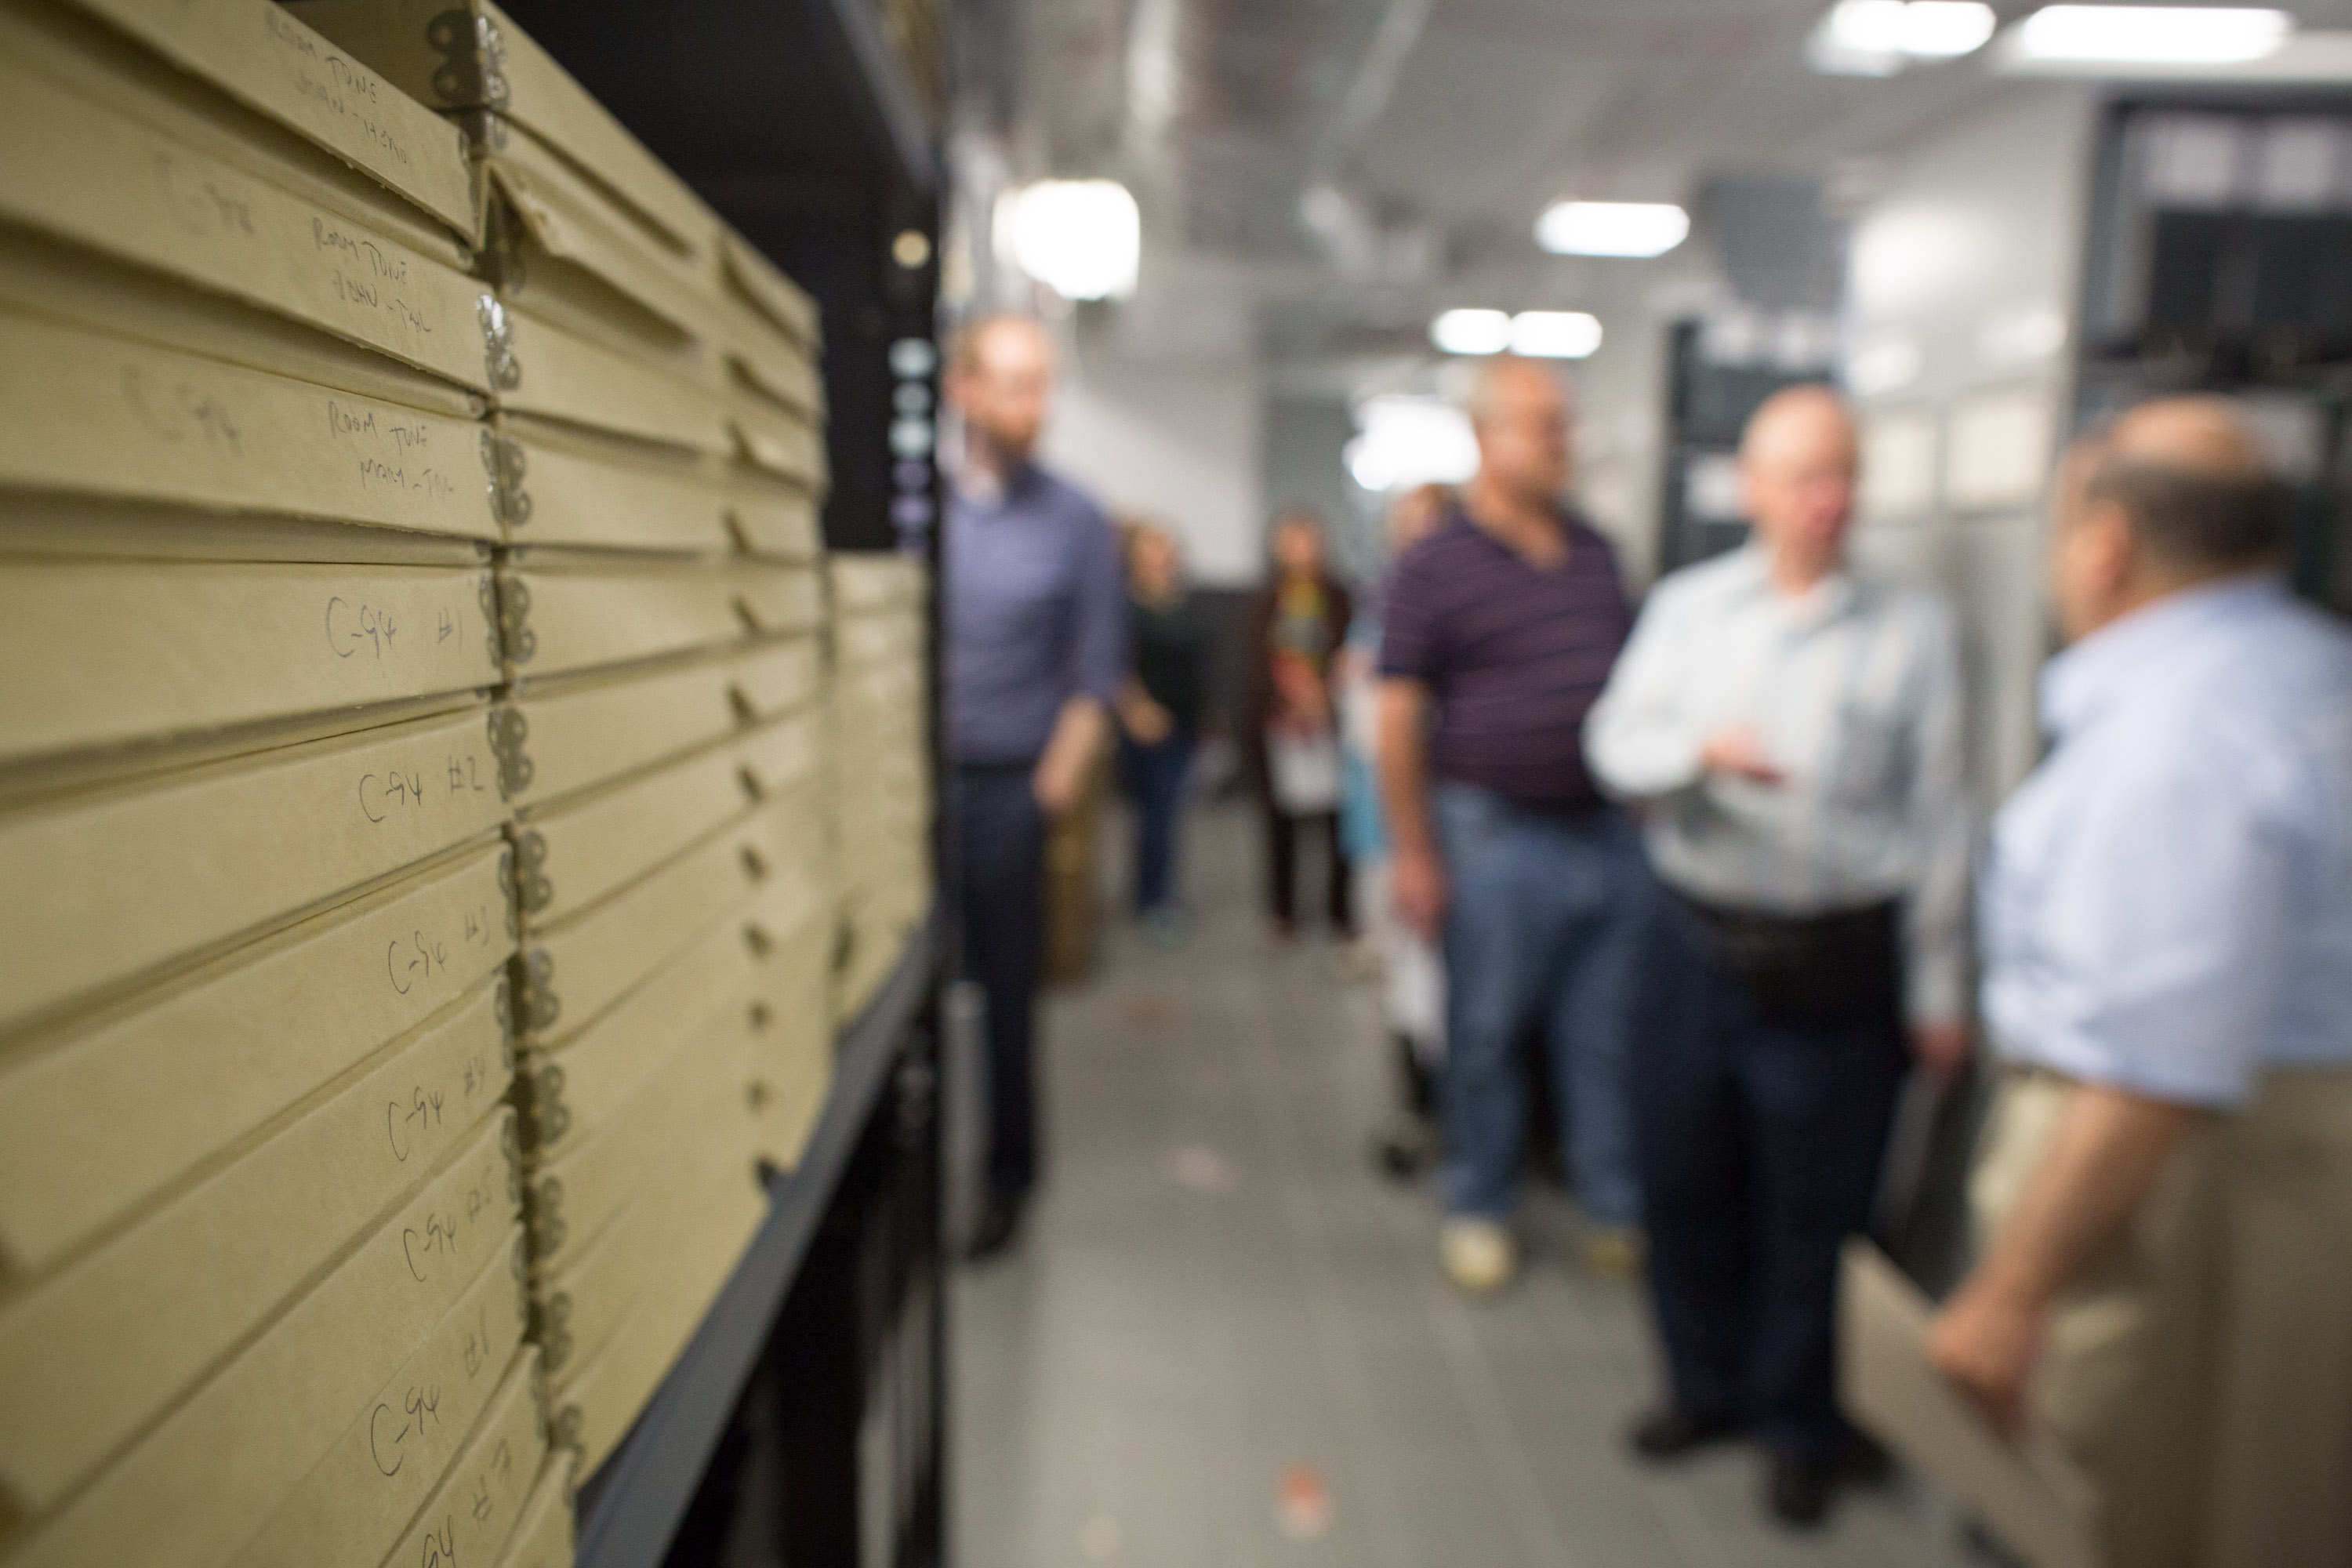 A tour of the archives storage space